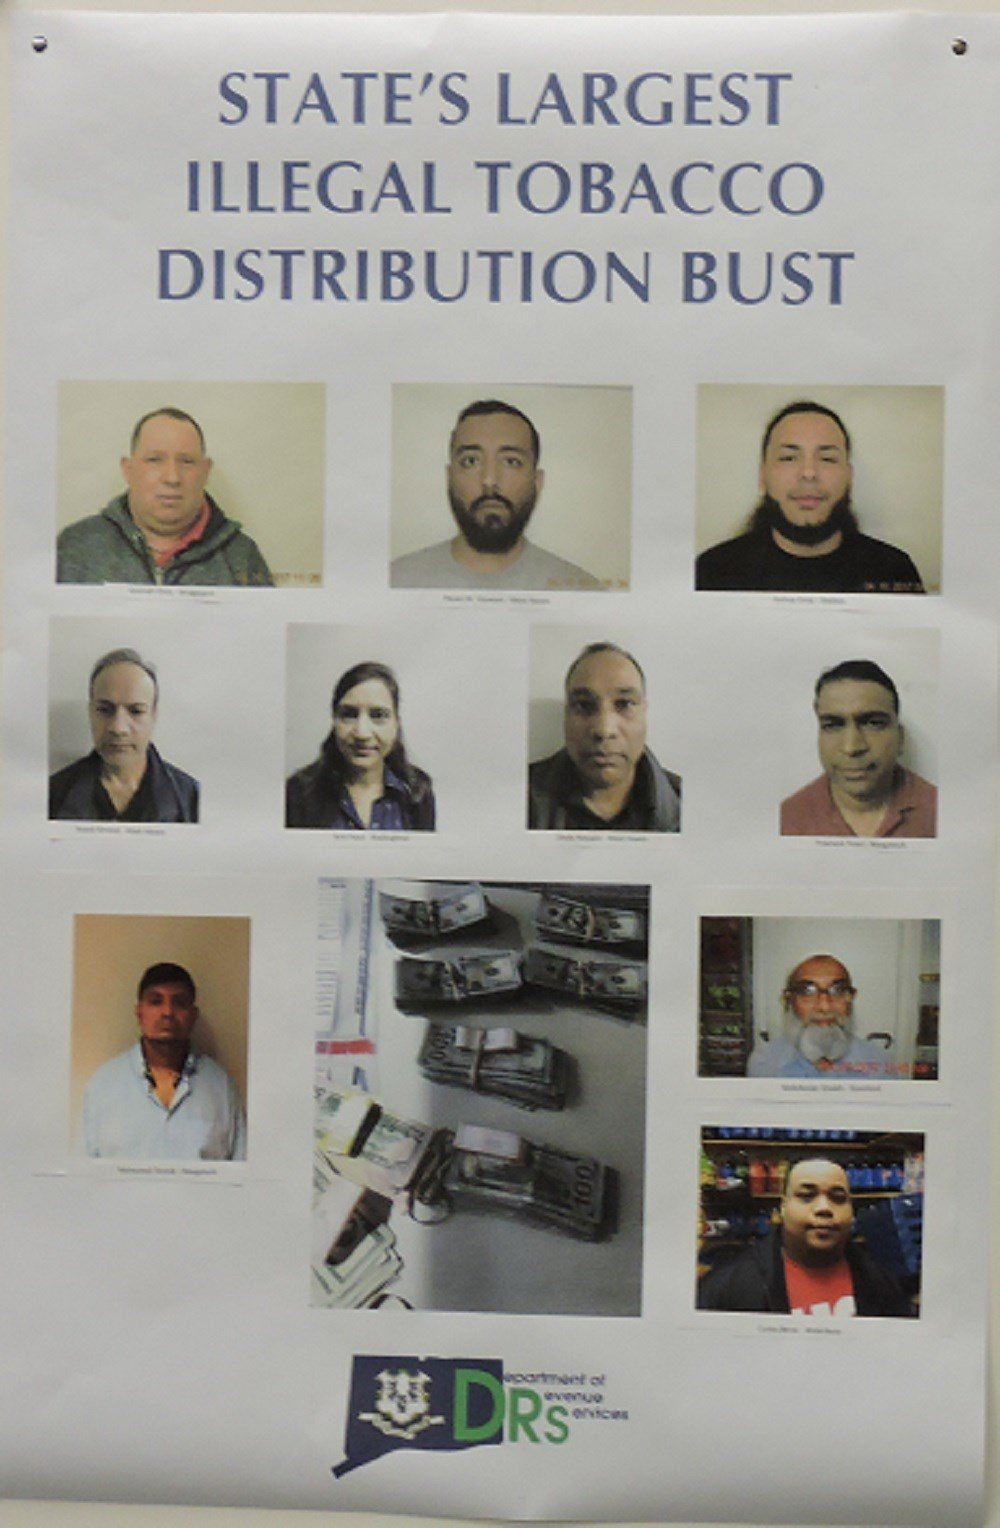 Ten suspects were arrested as part of an investigation into an illegal tobacco distribution ring. (DRS photo)